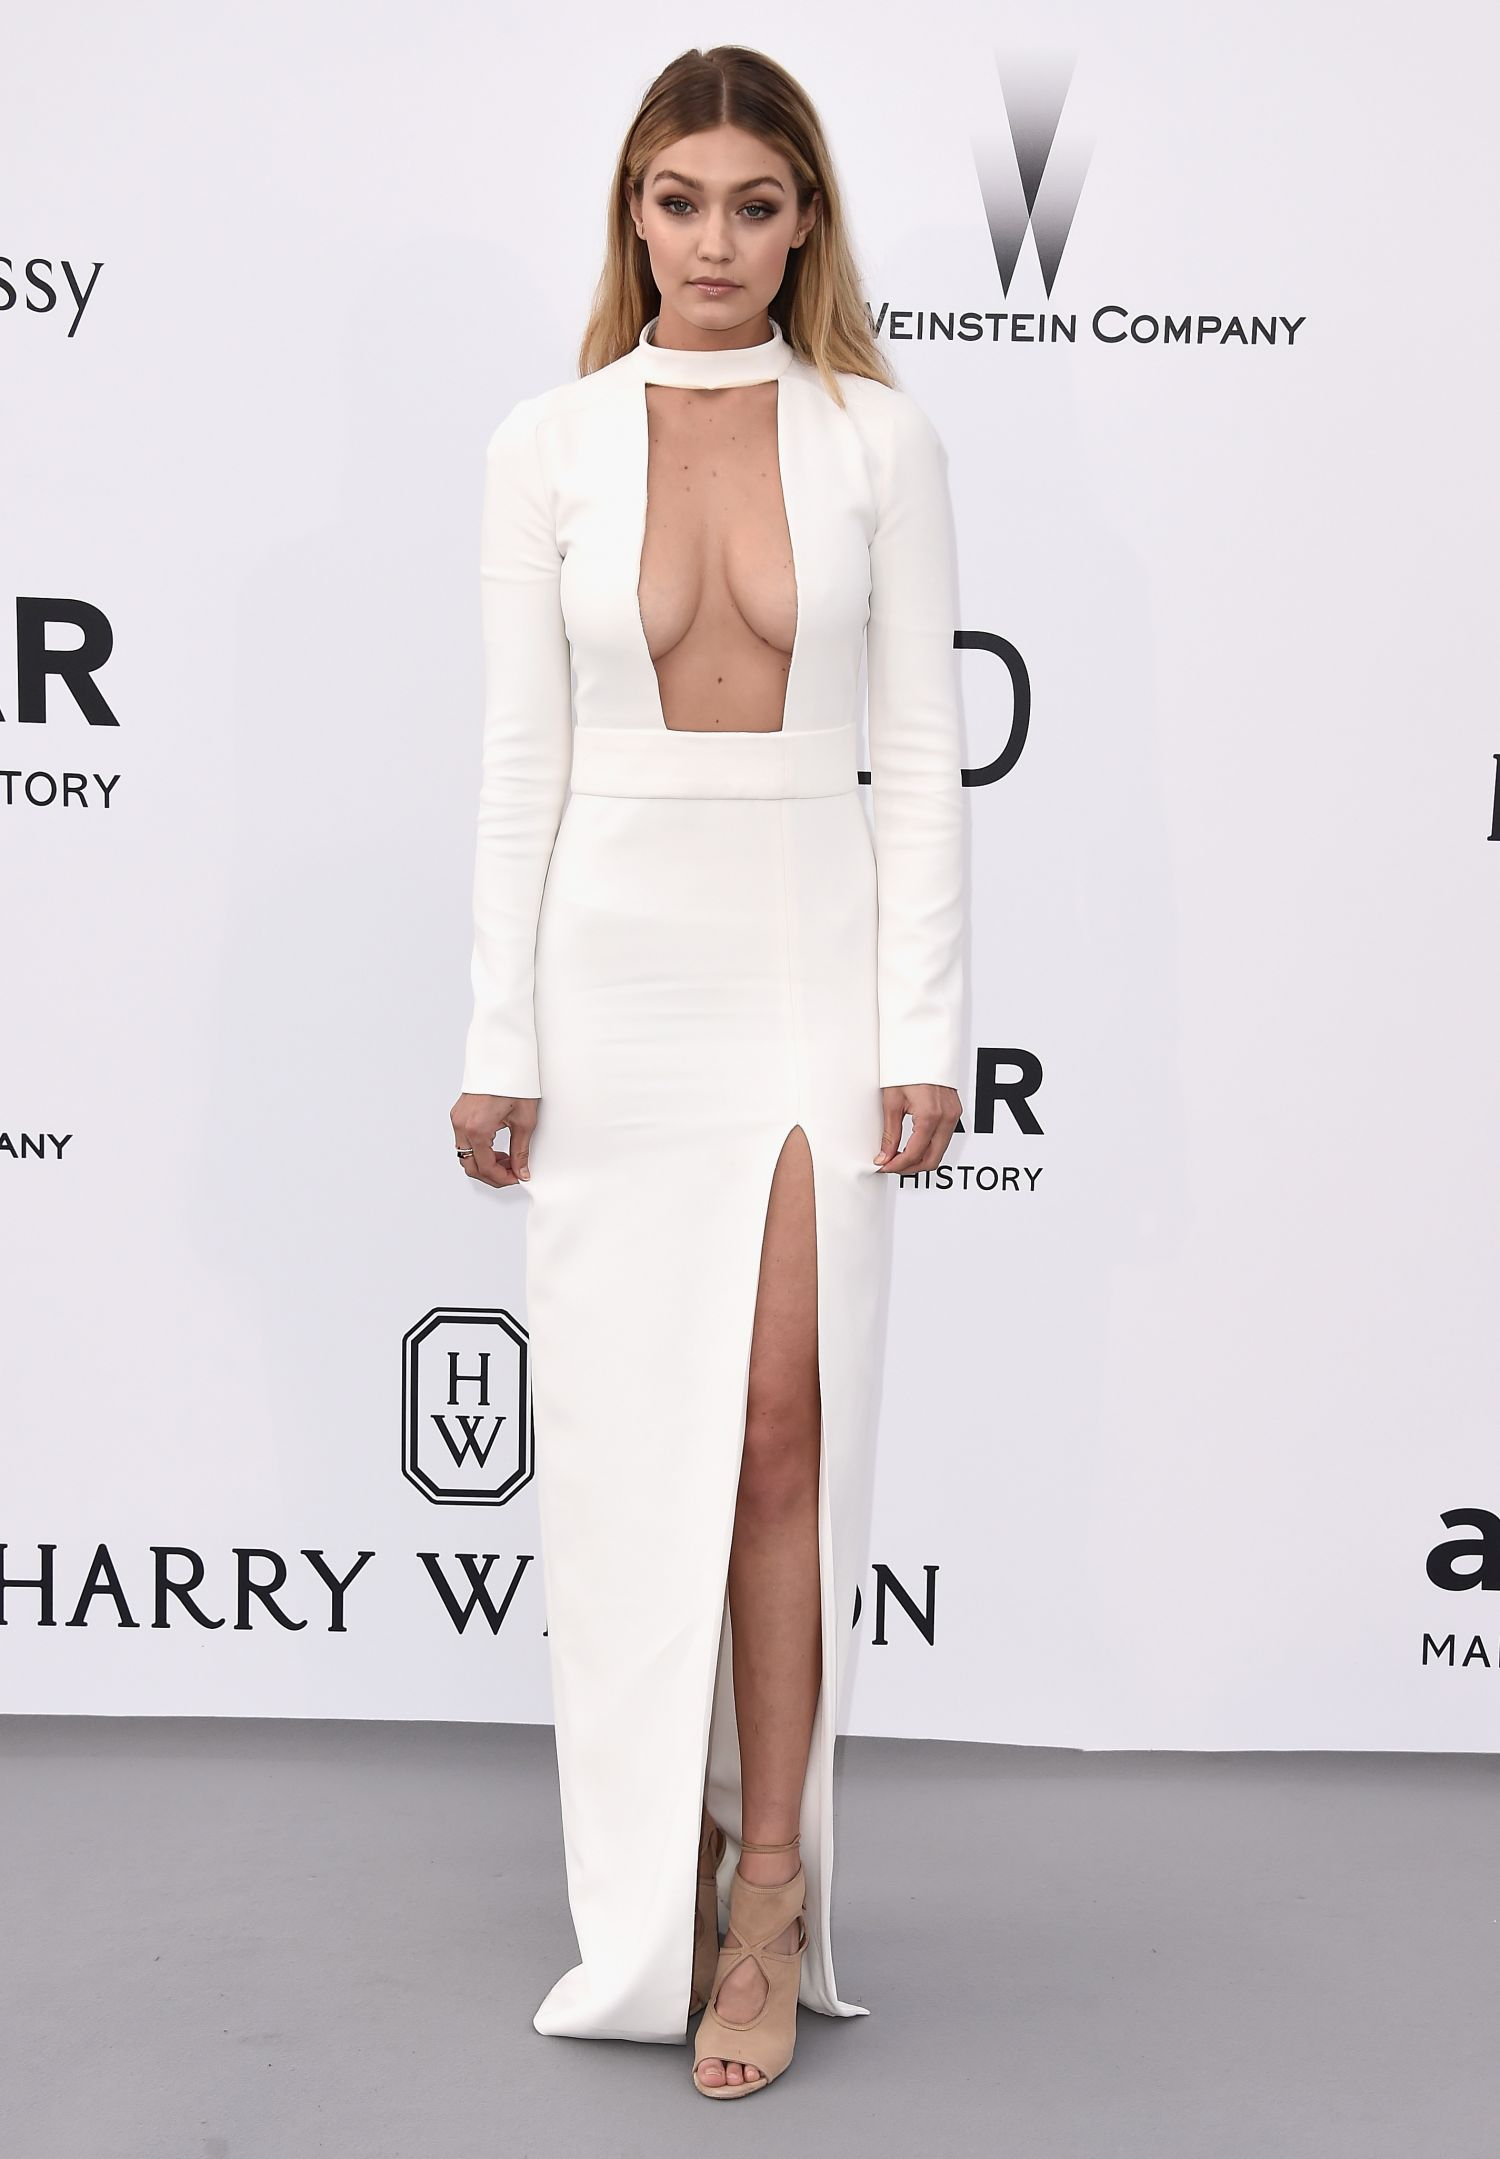 Gigi-Hadid-amfAR-22nd-Cinema-Against-AIDS-Gala-in-France-2.jpg